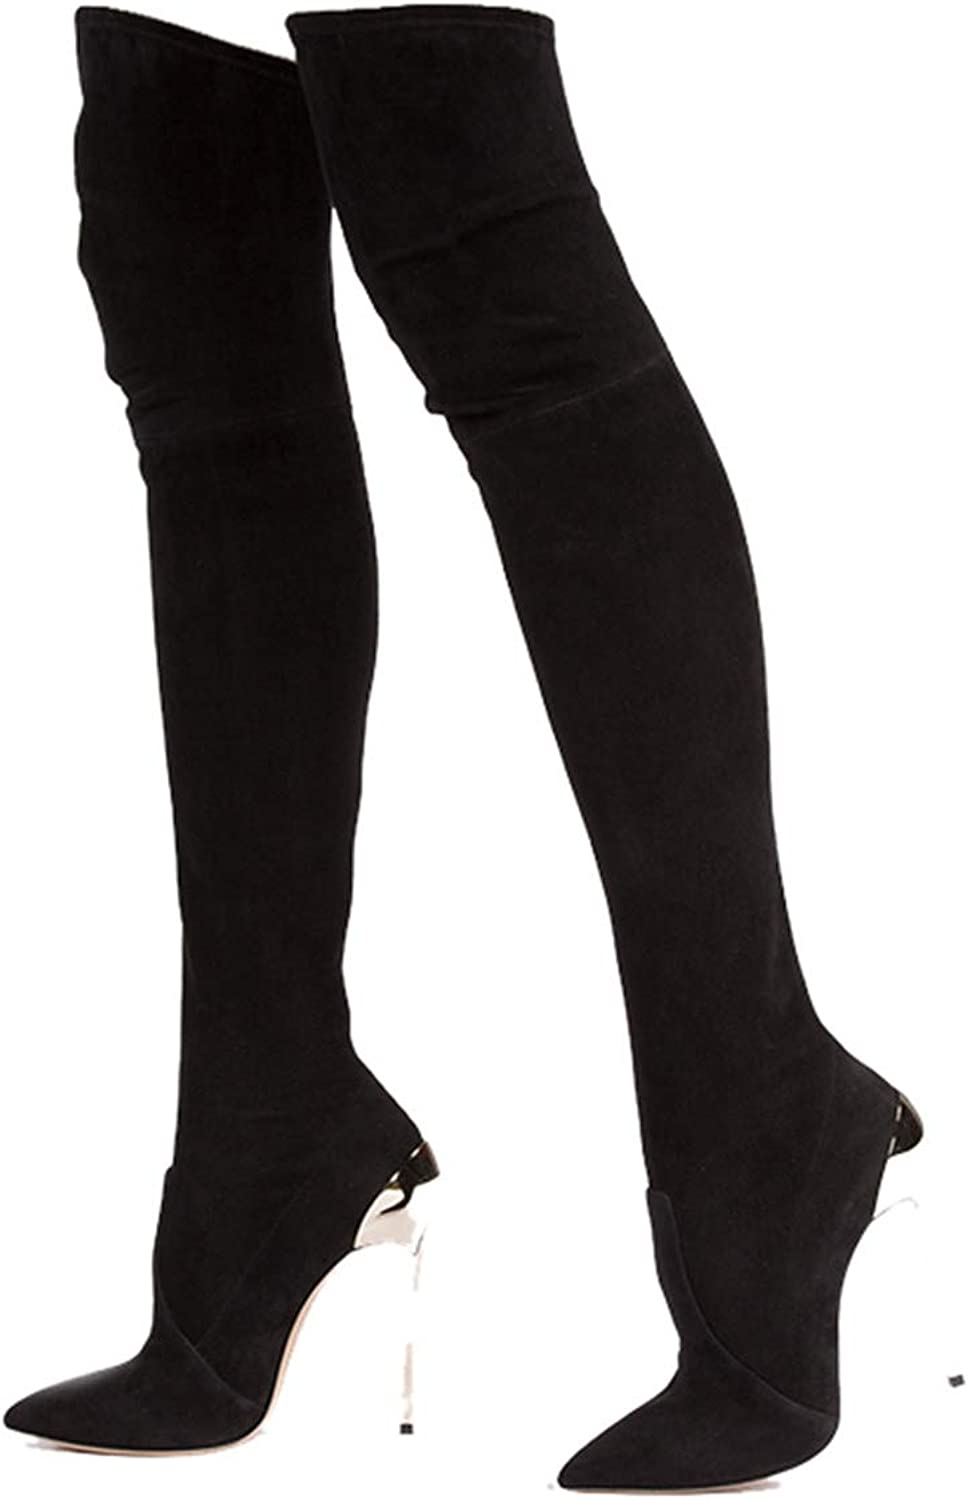 Leroyca Autumn Winter Women Boots Stretch Faux Suede Slim Thigh High Boots Over The Knee Boots High Heels shoes